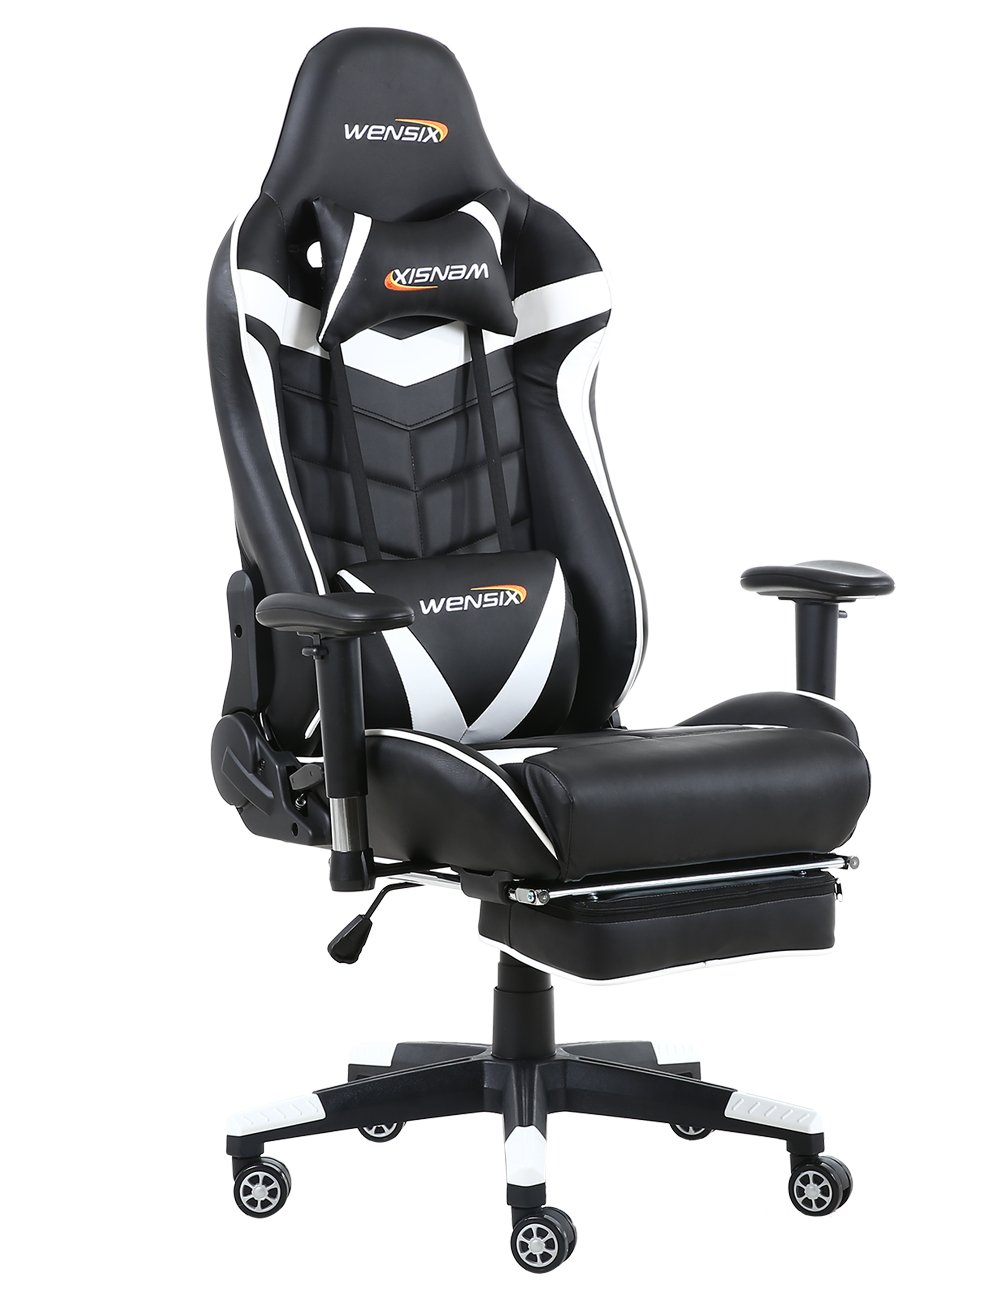 WENSIX Gaming Chair High Back Computer Chair With Adjusting Footrest, Ergonomic designs Extremely Durable PU Leather Steel Frame Racing Chair (White-04)